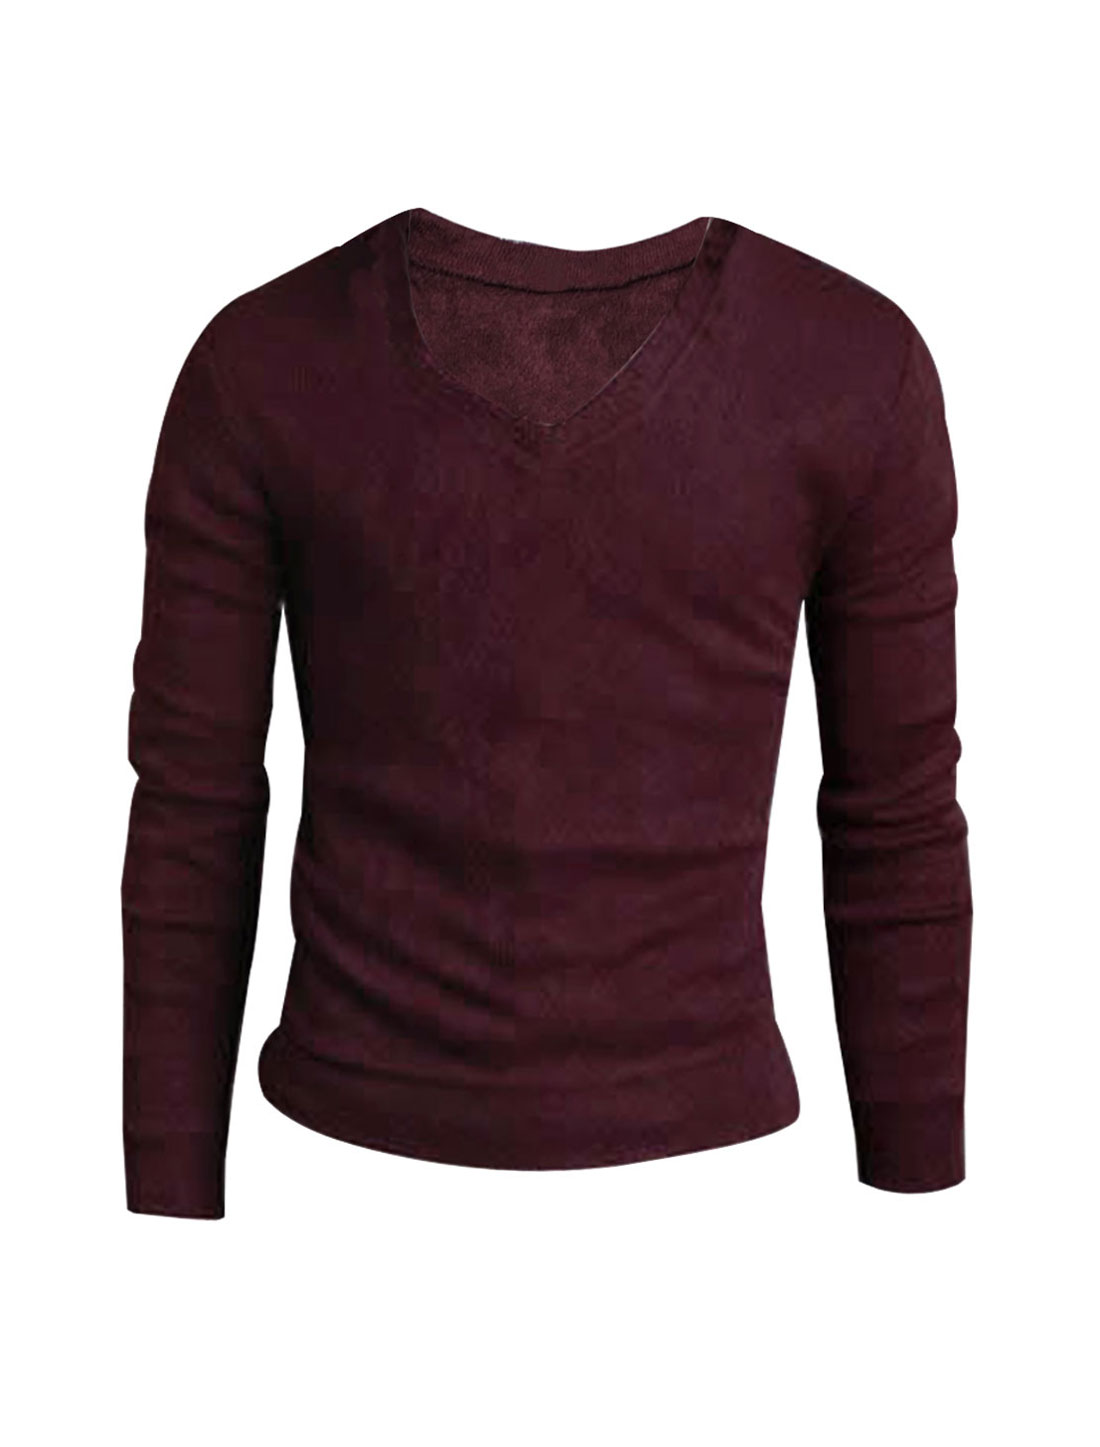 Mens Burgundy NEW Pullover Solid Color V-neck Slim Fall Sweater S